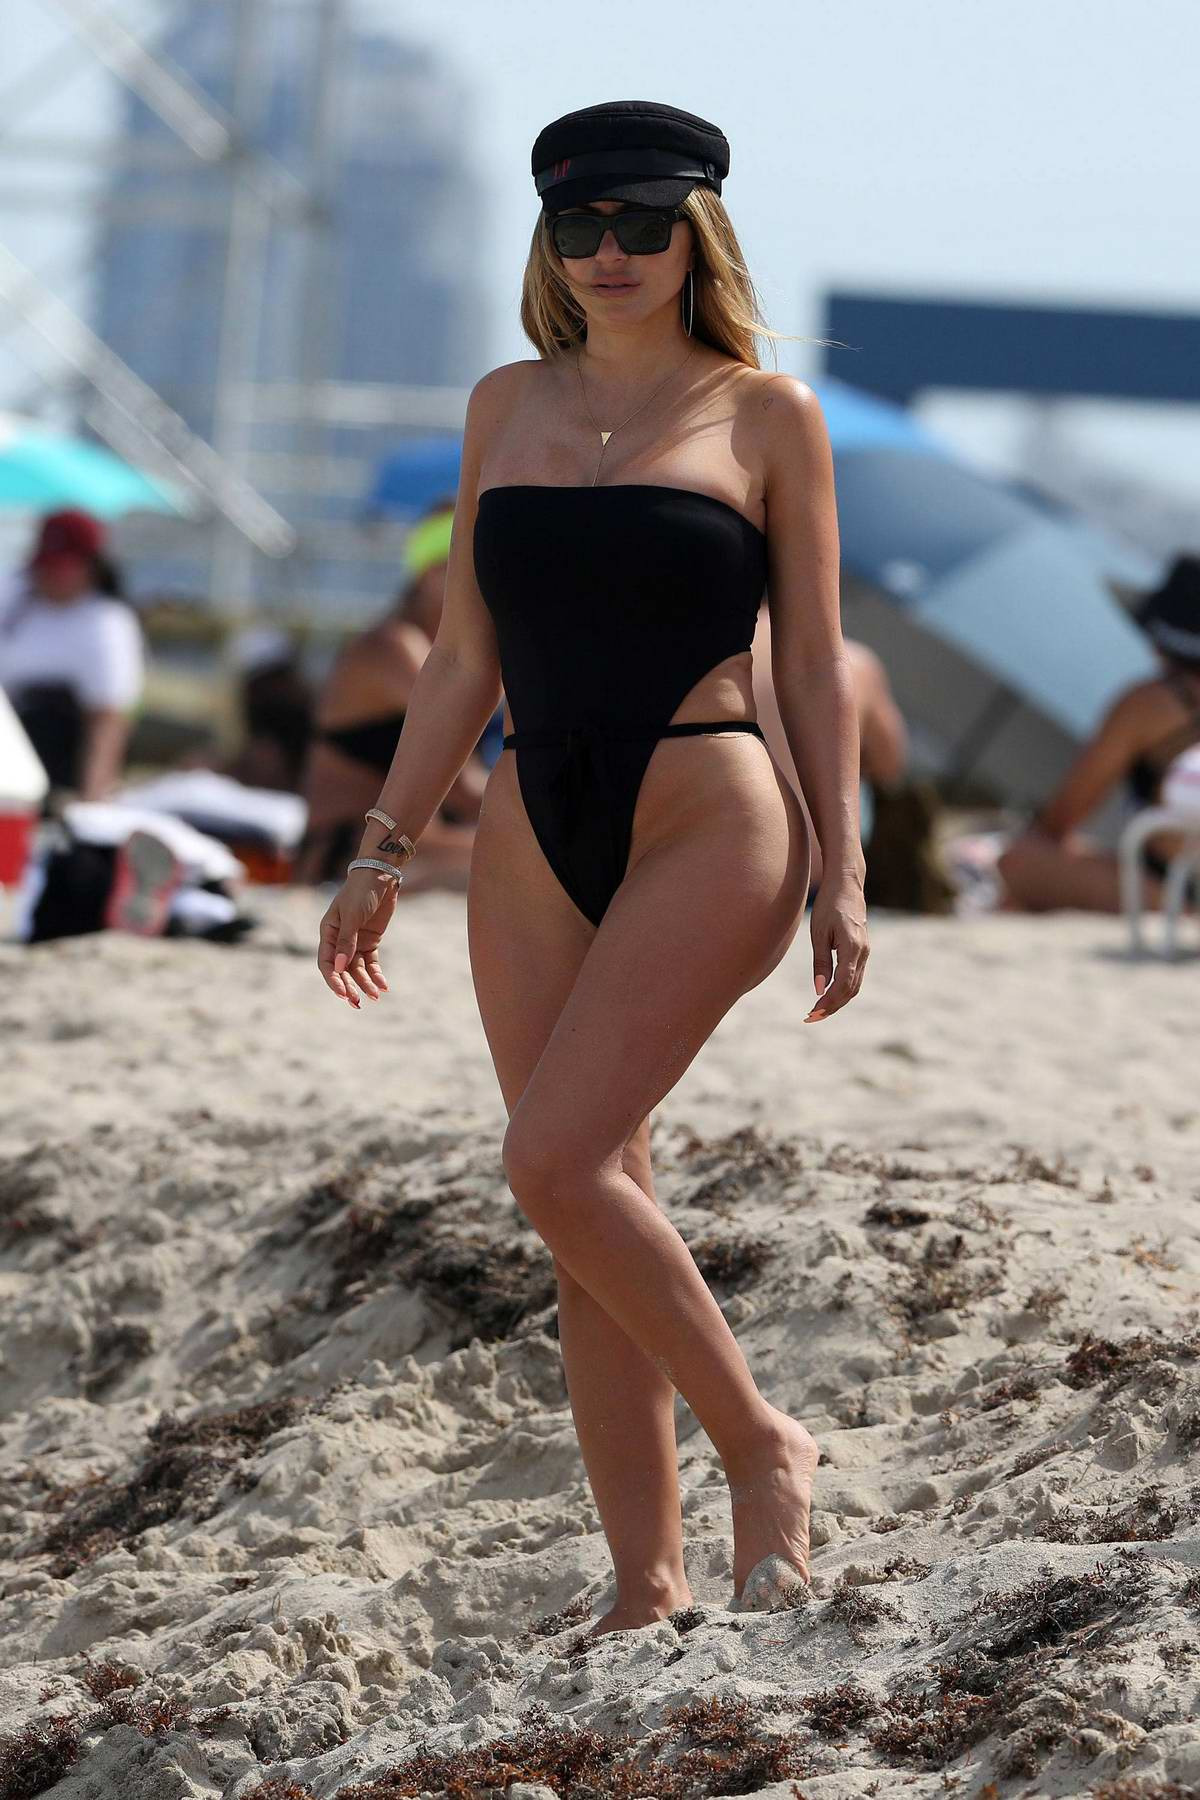 Larsa Pippen hits the beach in black swimsuit in Miami, Florida